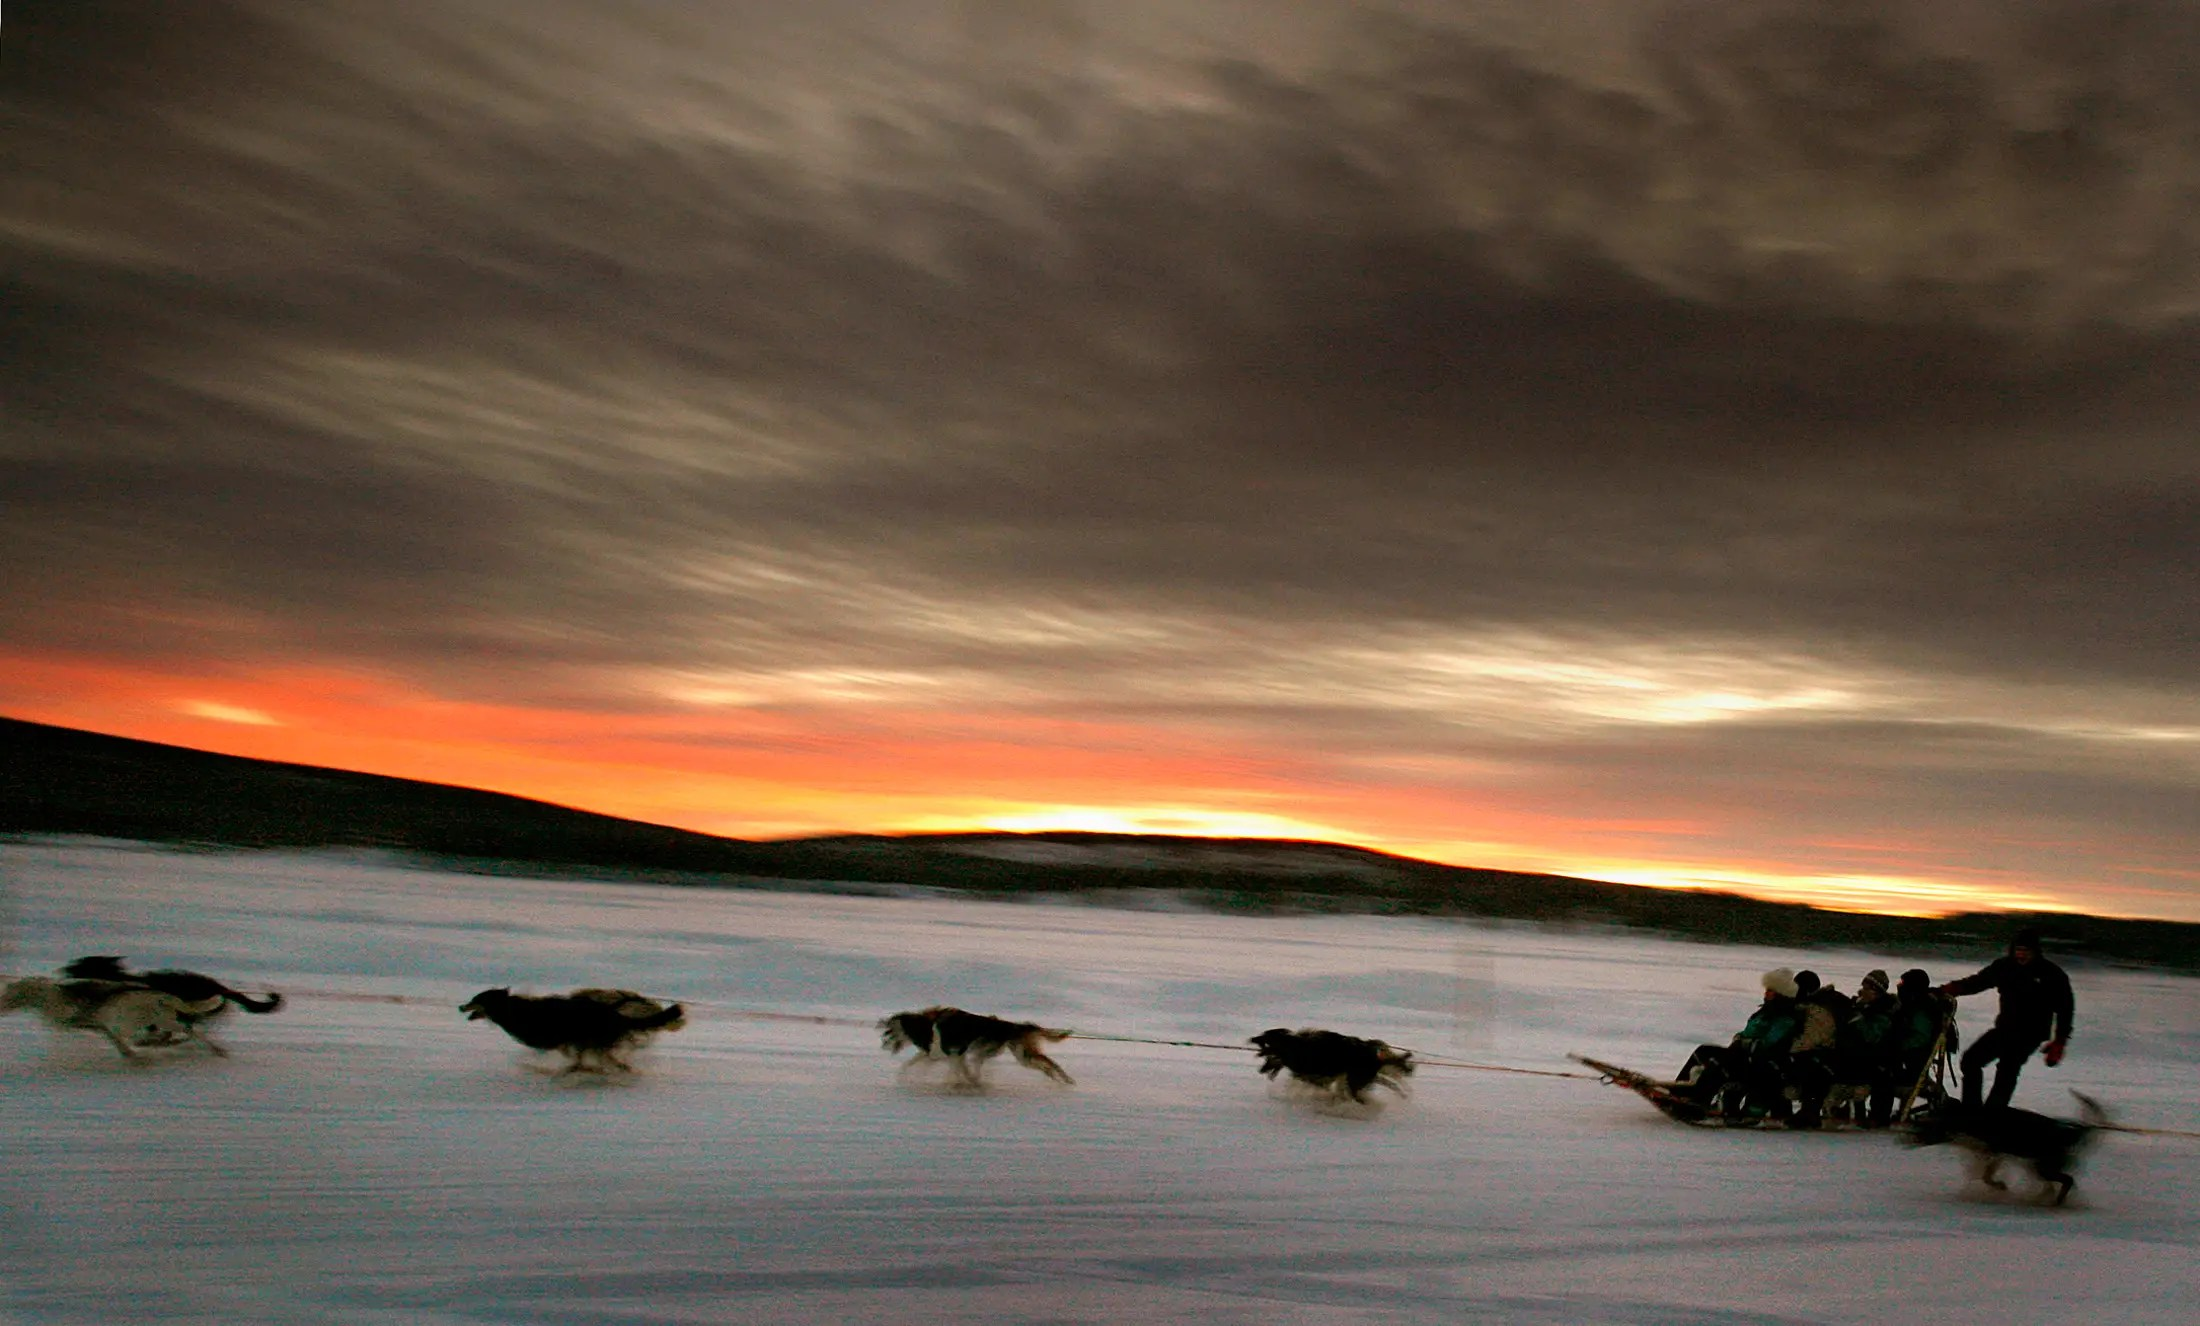 A dogsled team carries tourists down the frozen Torne River, located above the Arctic Circle in northern Sweden.